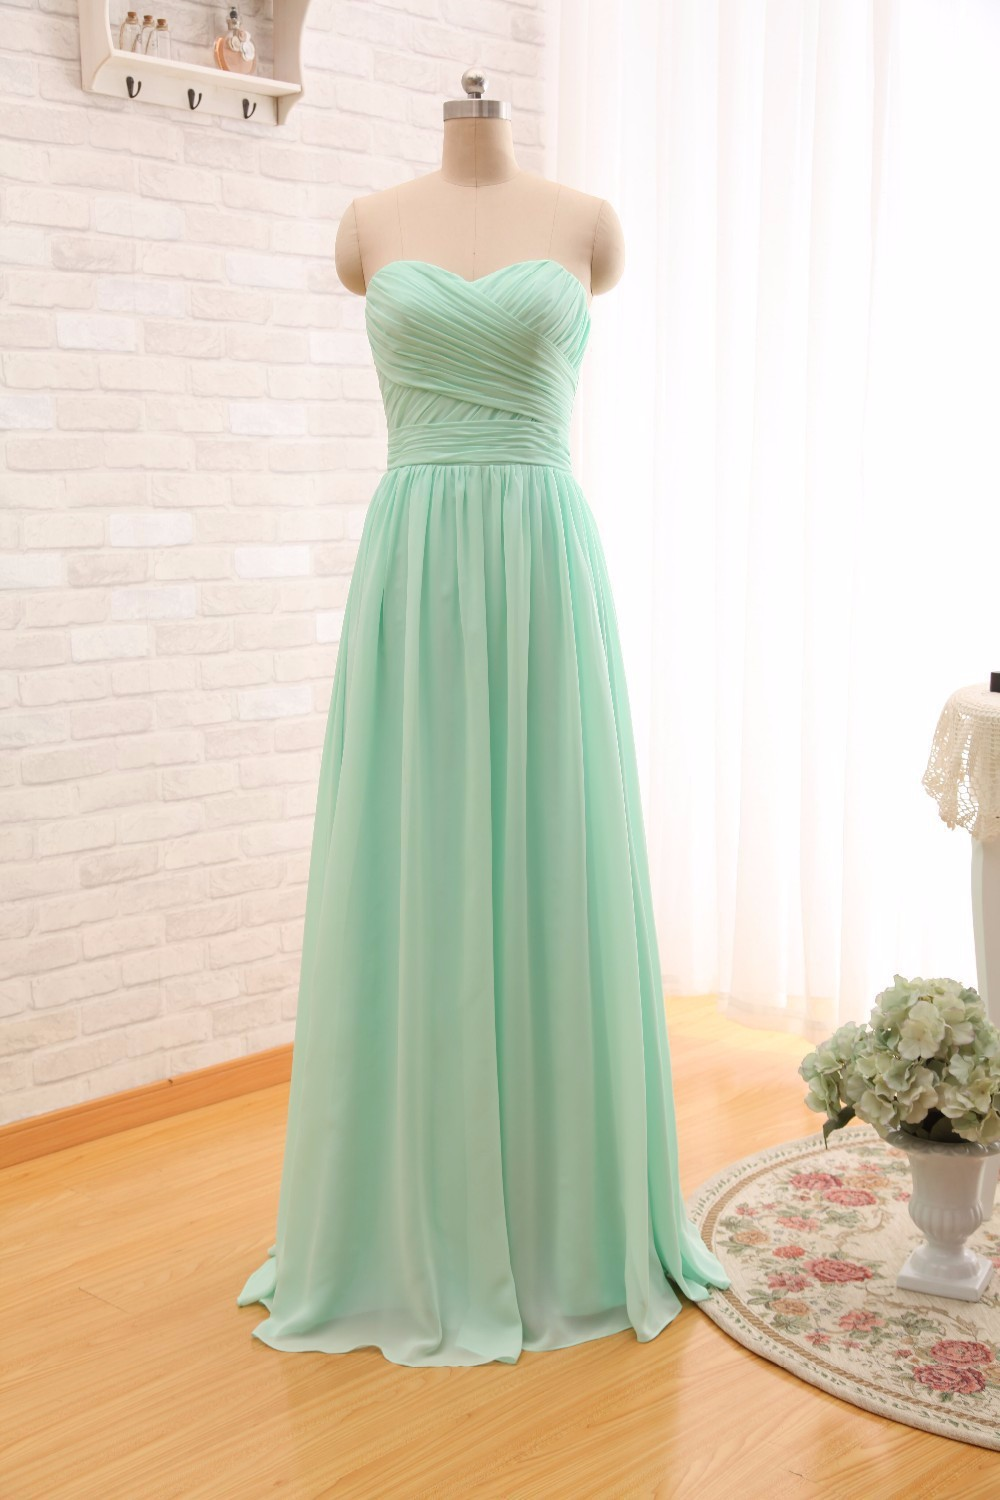 Ever-Beauty-Mint-Green-Long-Chiffon-A-Line-Pleated-Bridesmaid-Dress-Under-50-Wedding-Party-Dress